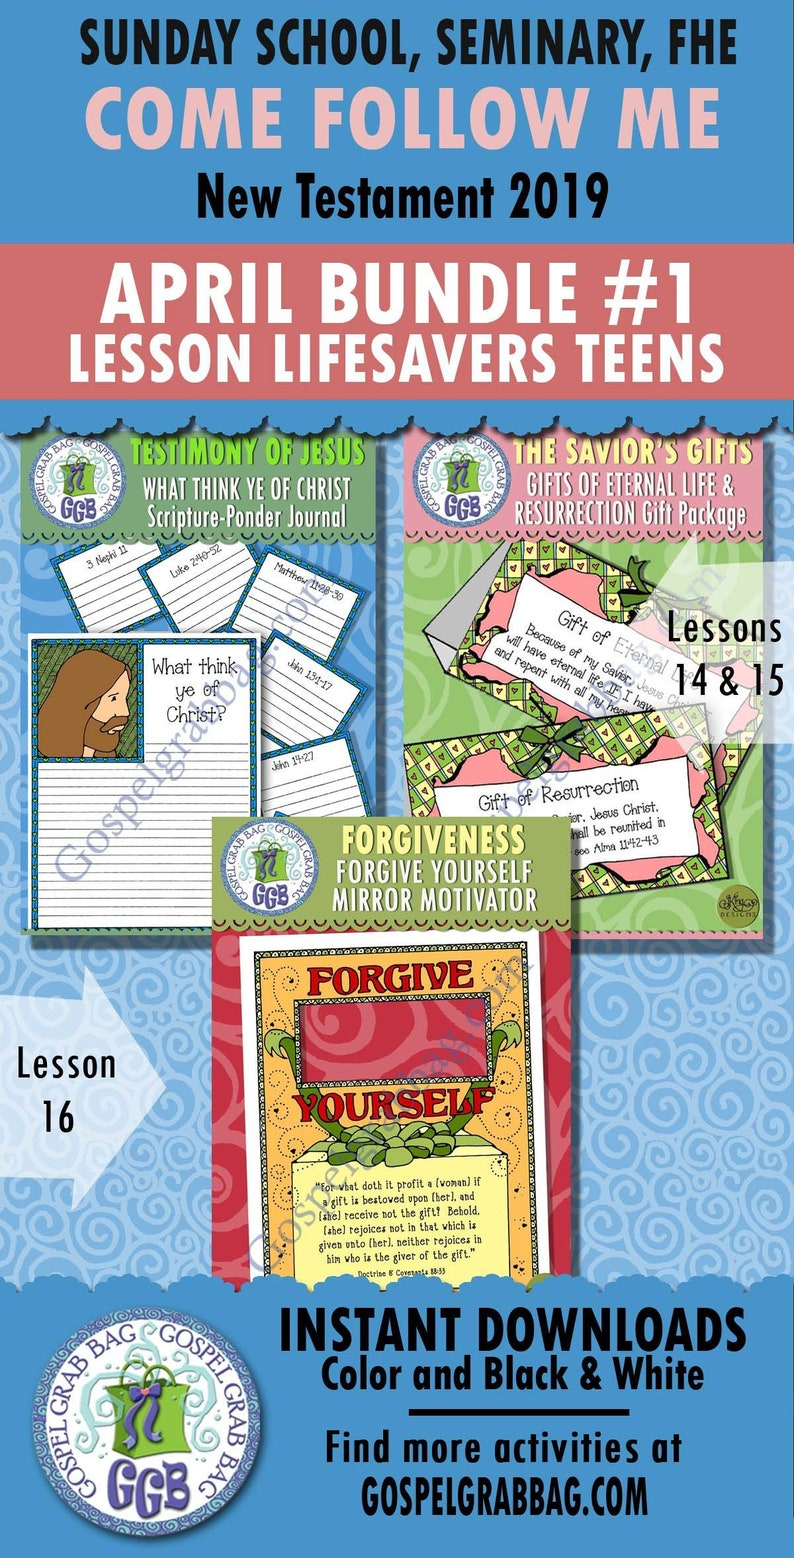 2019 APRIL TEENS Come Follow Me Lesson 14-16 Bundle 1 Primary-Home  ACTIVITIES: Testimony Journal, Resurrection Gift, Forgive Self motivator